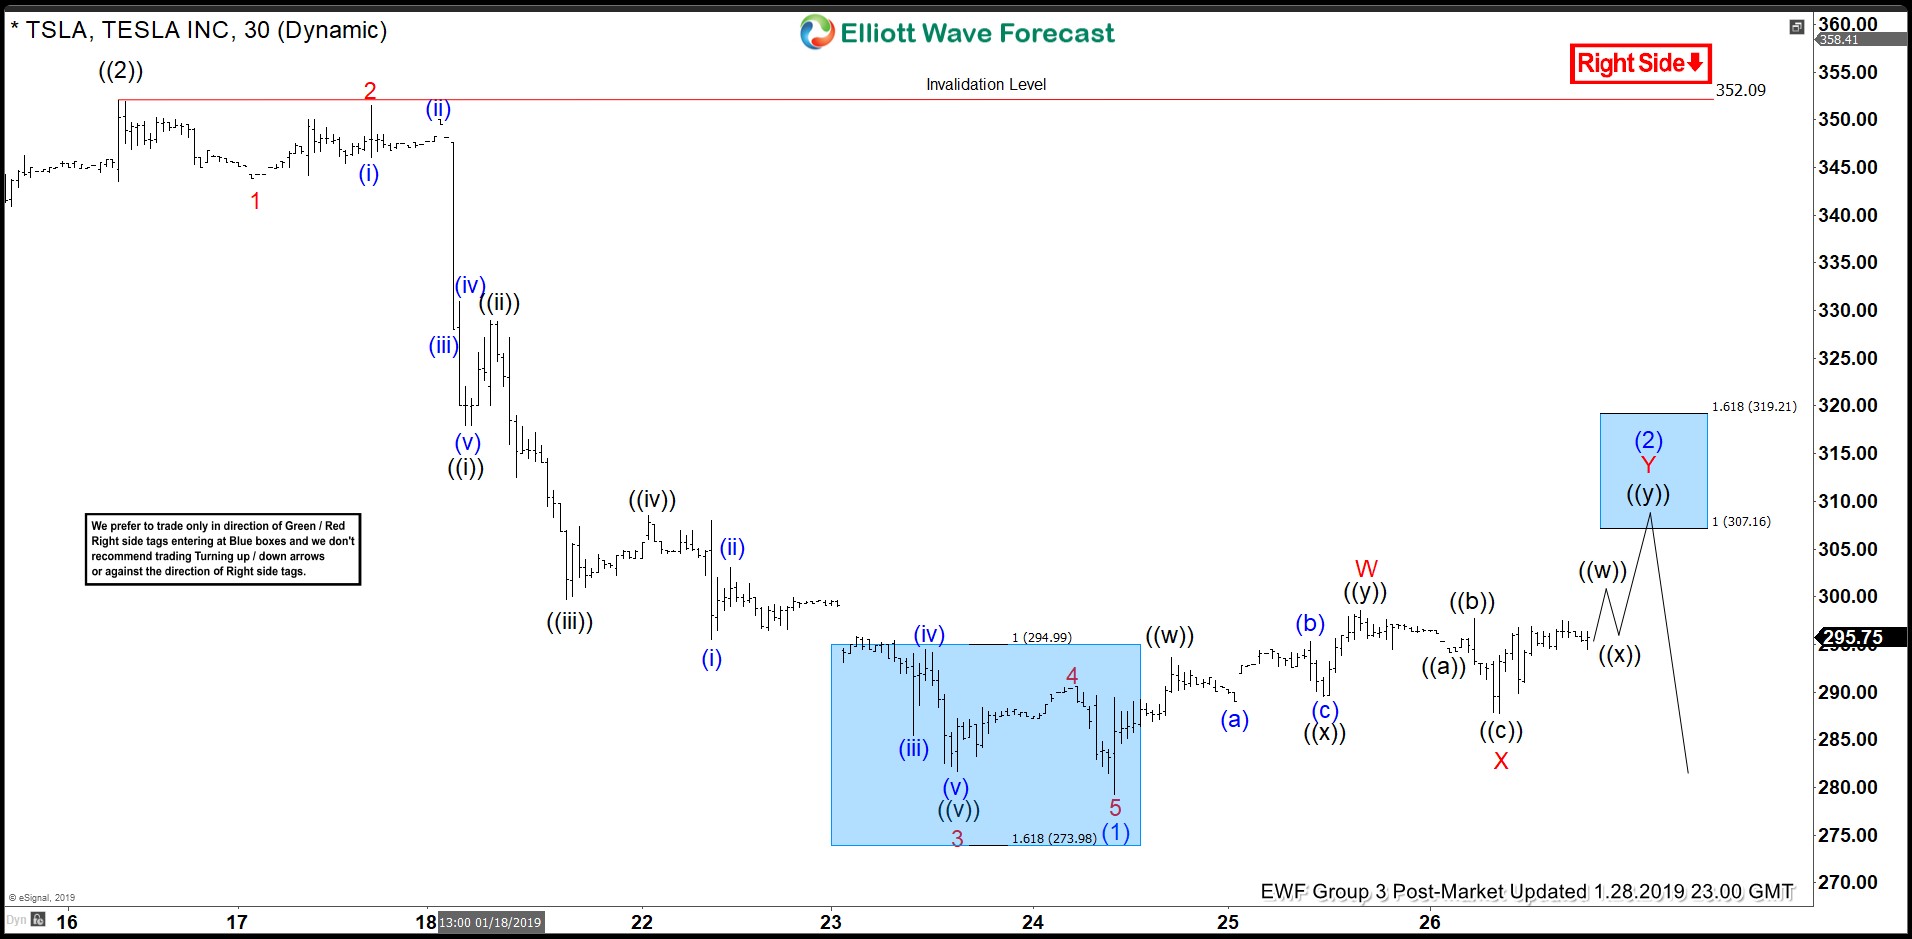 Tesla Elliott Wave view expect rally to fail